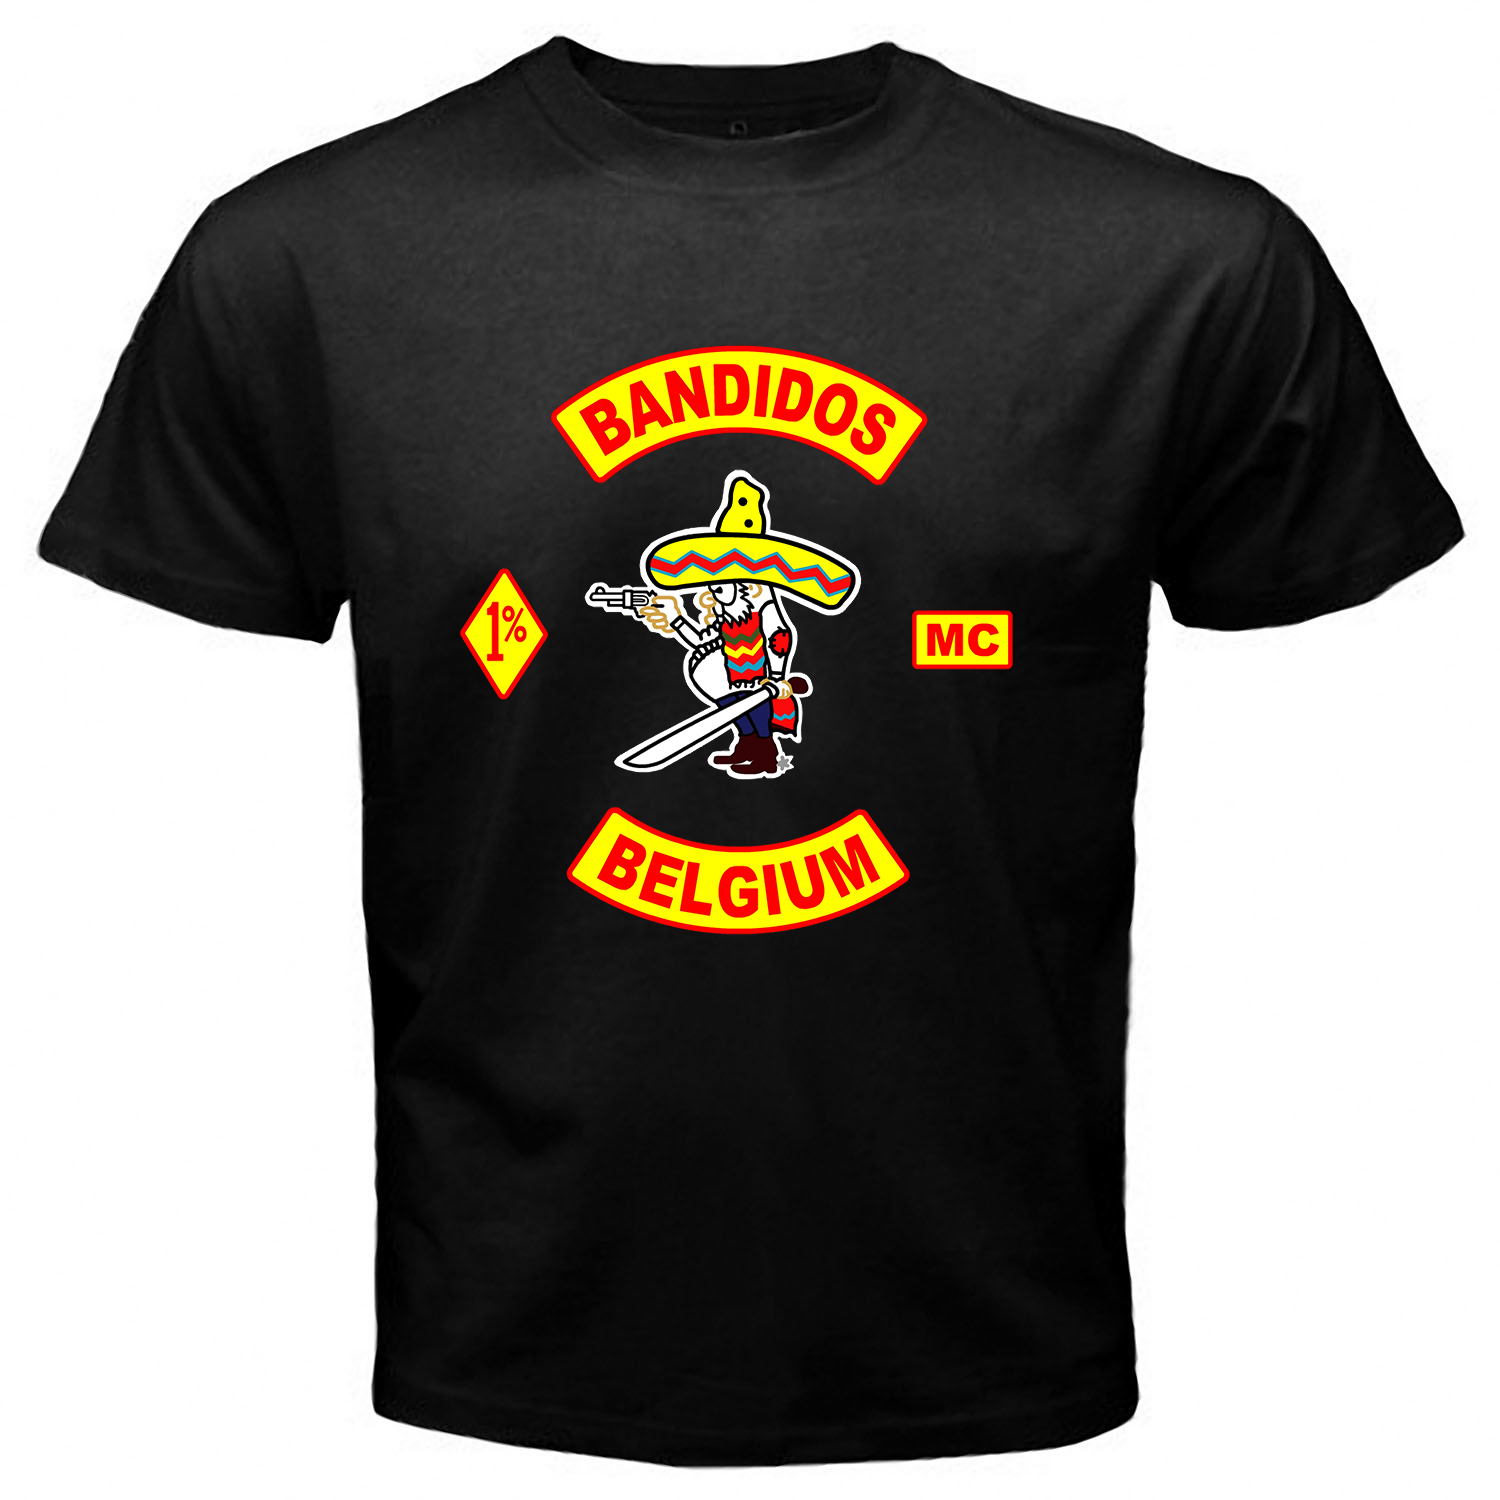 Bandidos Belgium Black T-shirt One Side